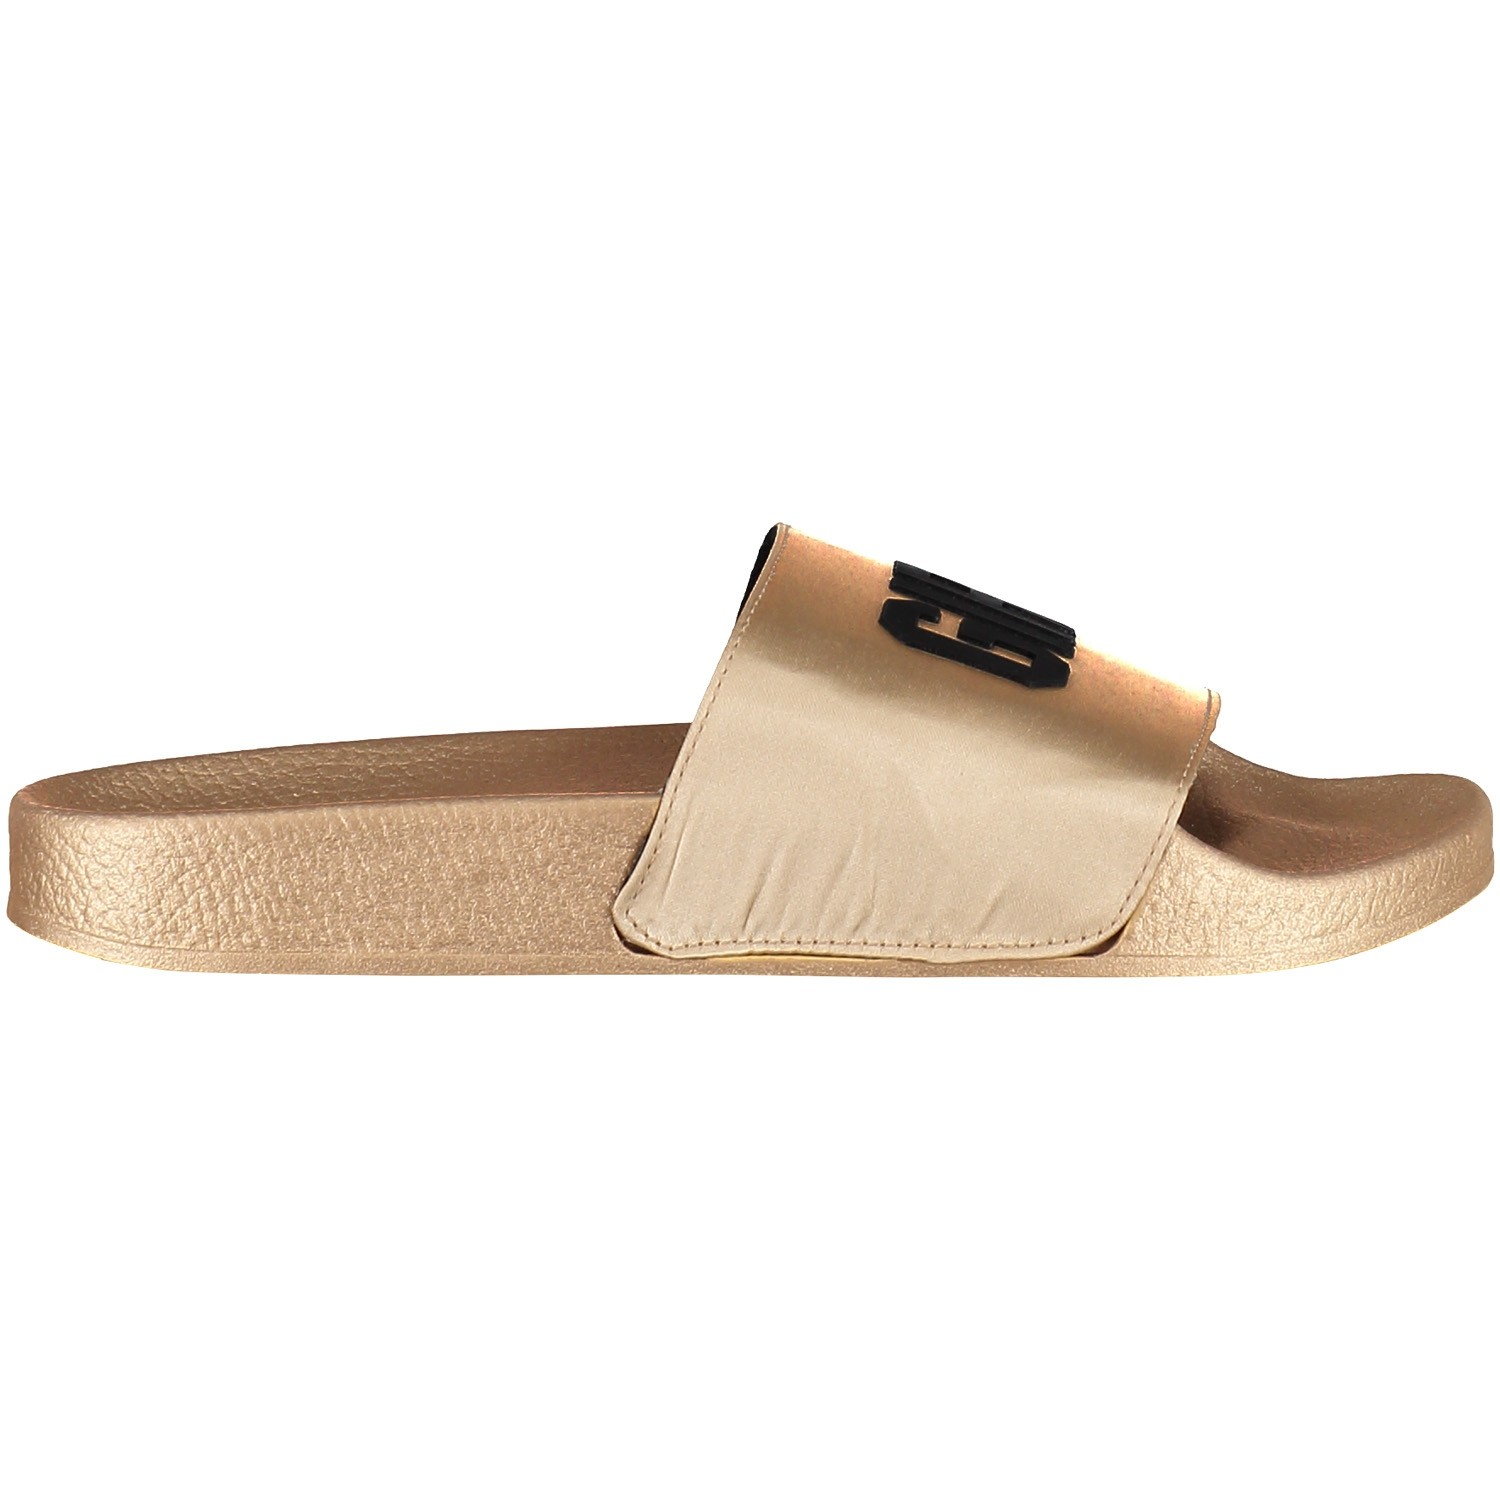 Afbeelding van The white Brand SATIN GG GOLD dames slippers goud